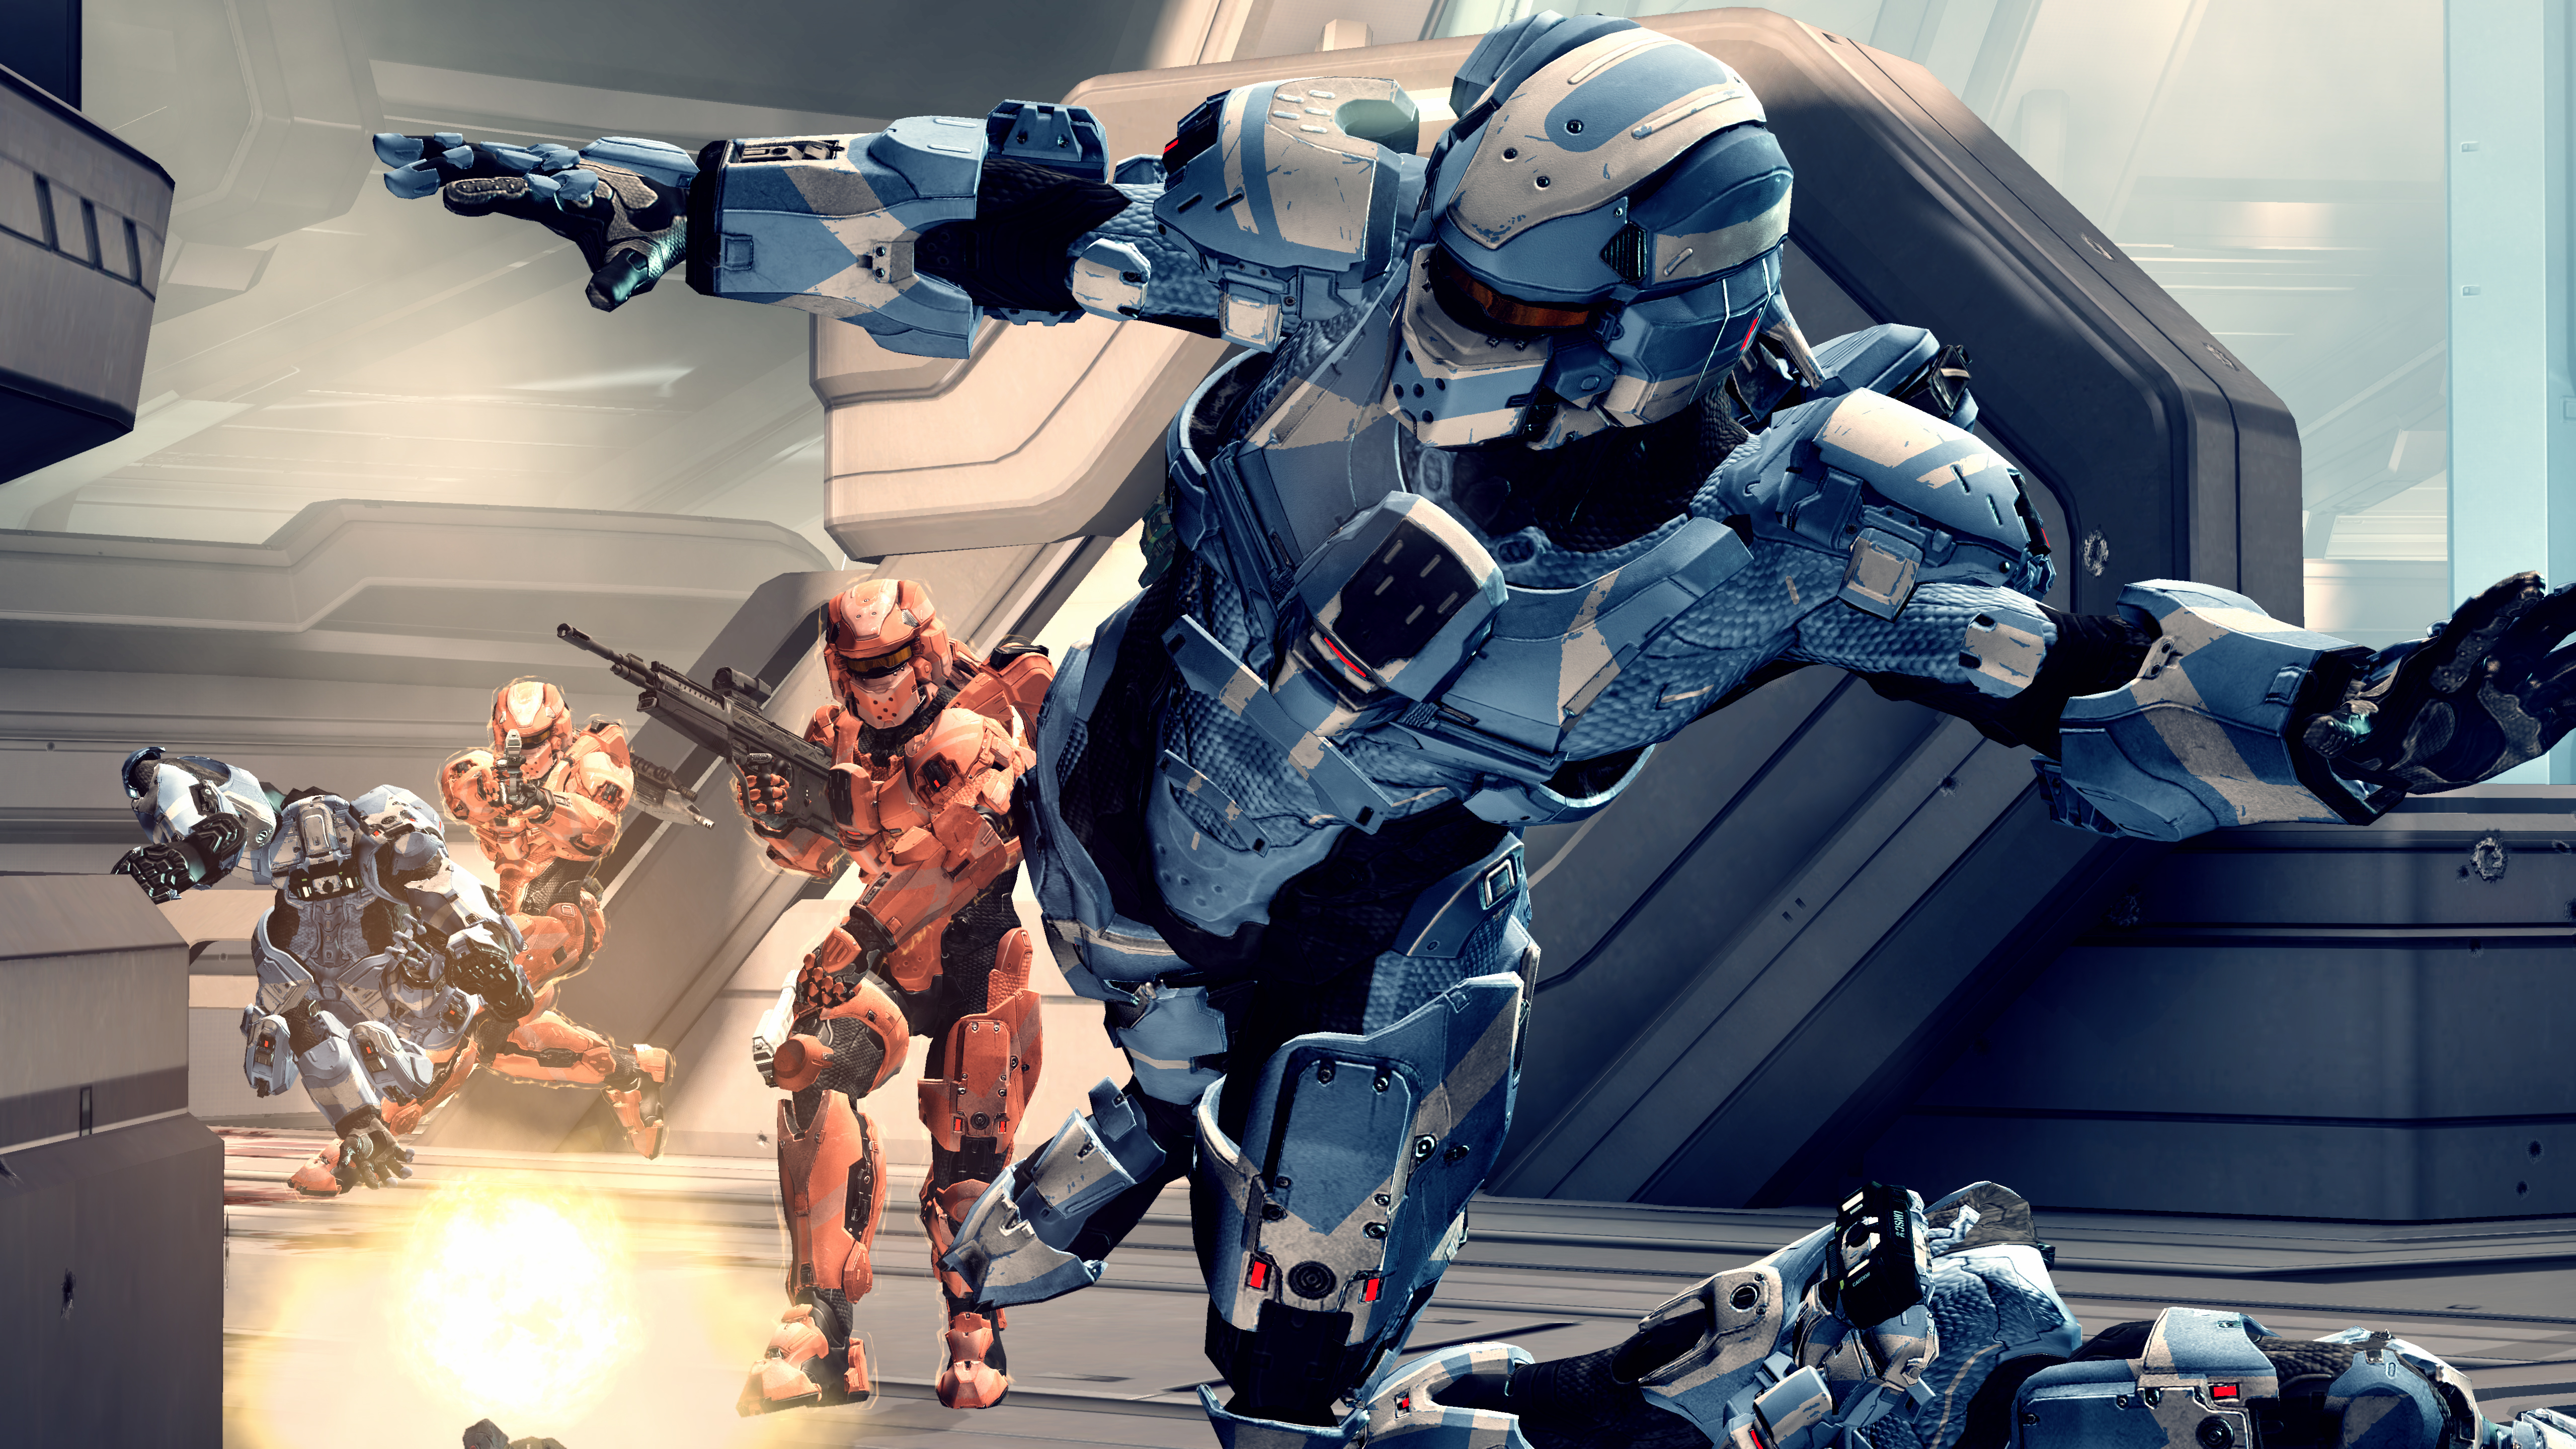 Multiplayer halo nation the halo encyclopedia halo 1 - Halo 4 pictures ...